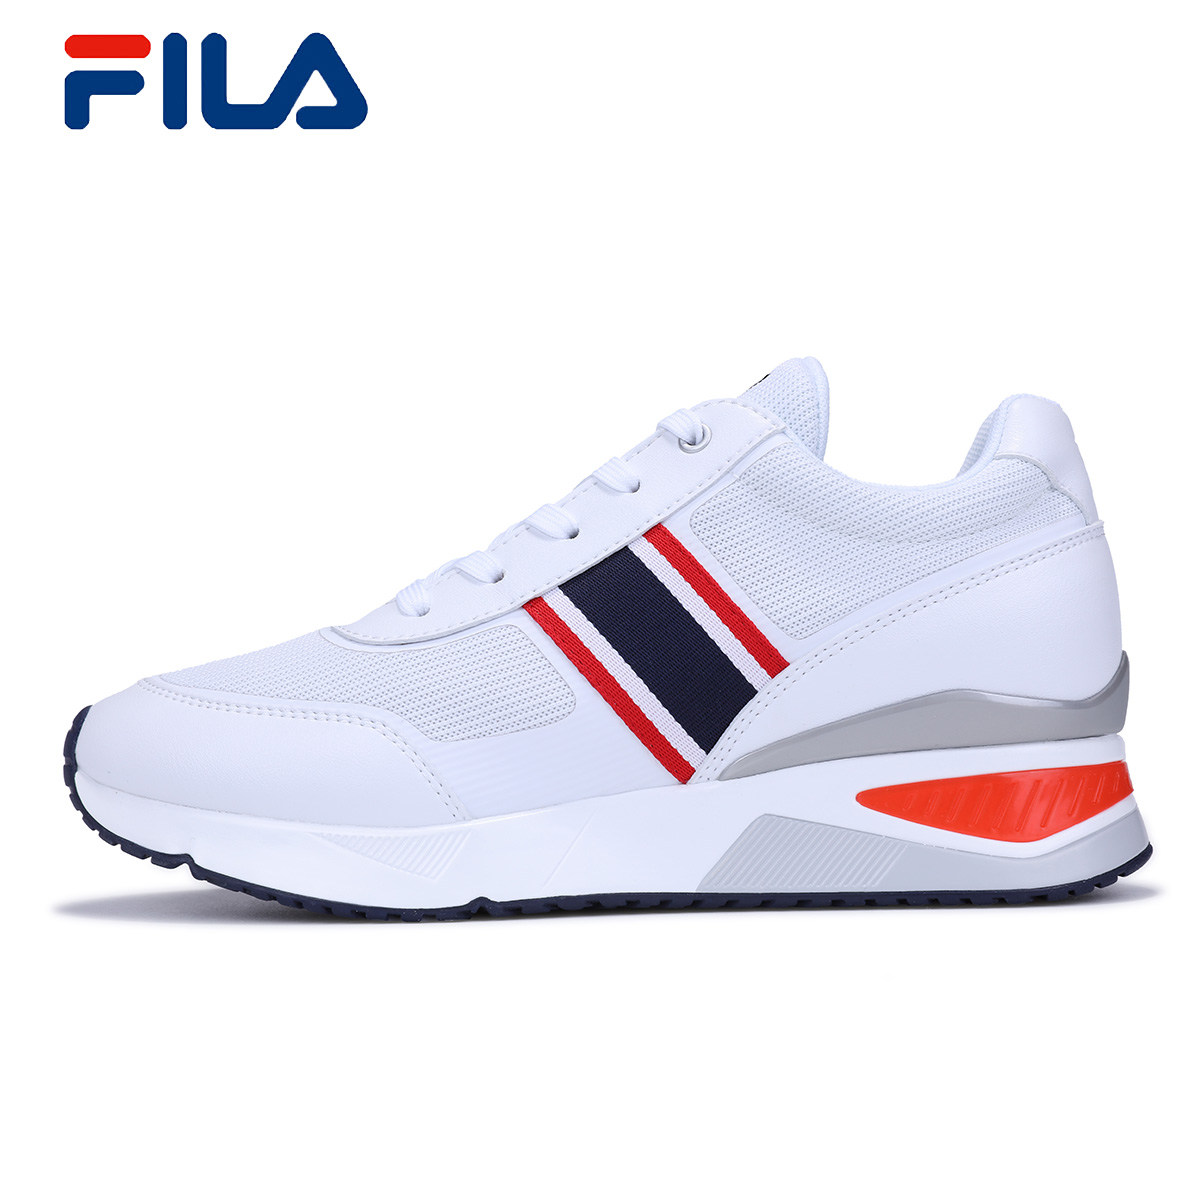 fila shoes lightbox moreview · lightbox moreview ... HDBRXOR